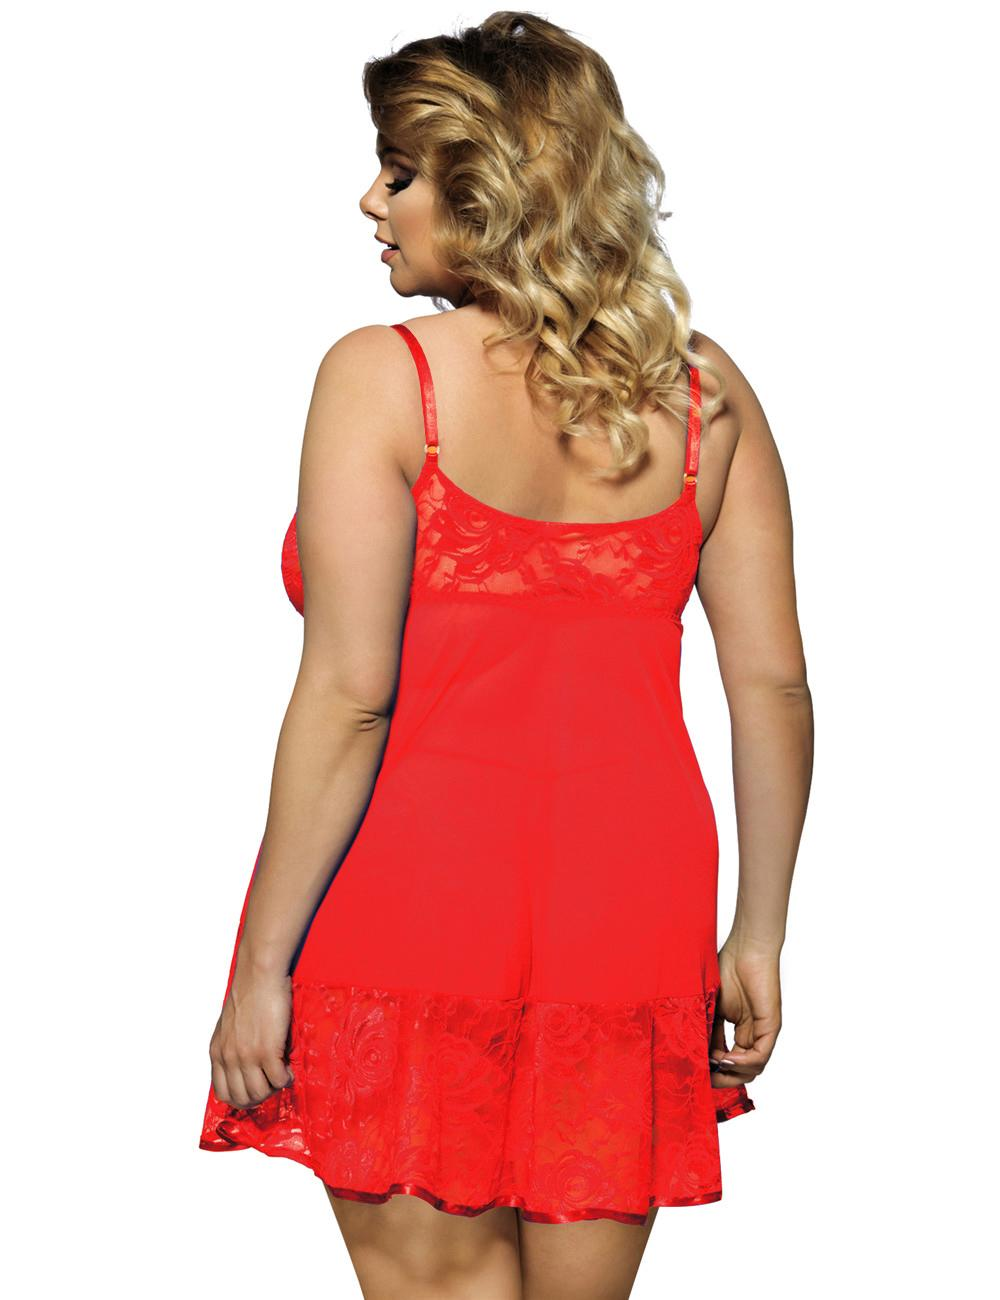 Red Lace Babydoll Set rear view